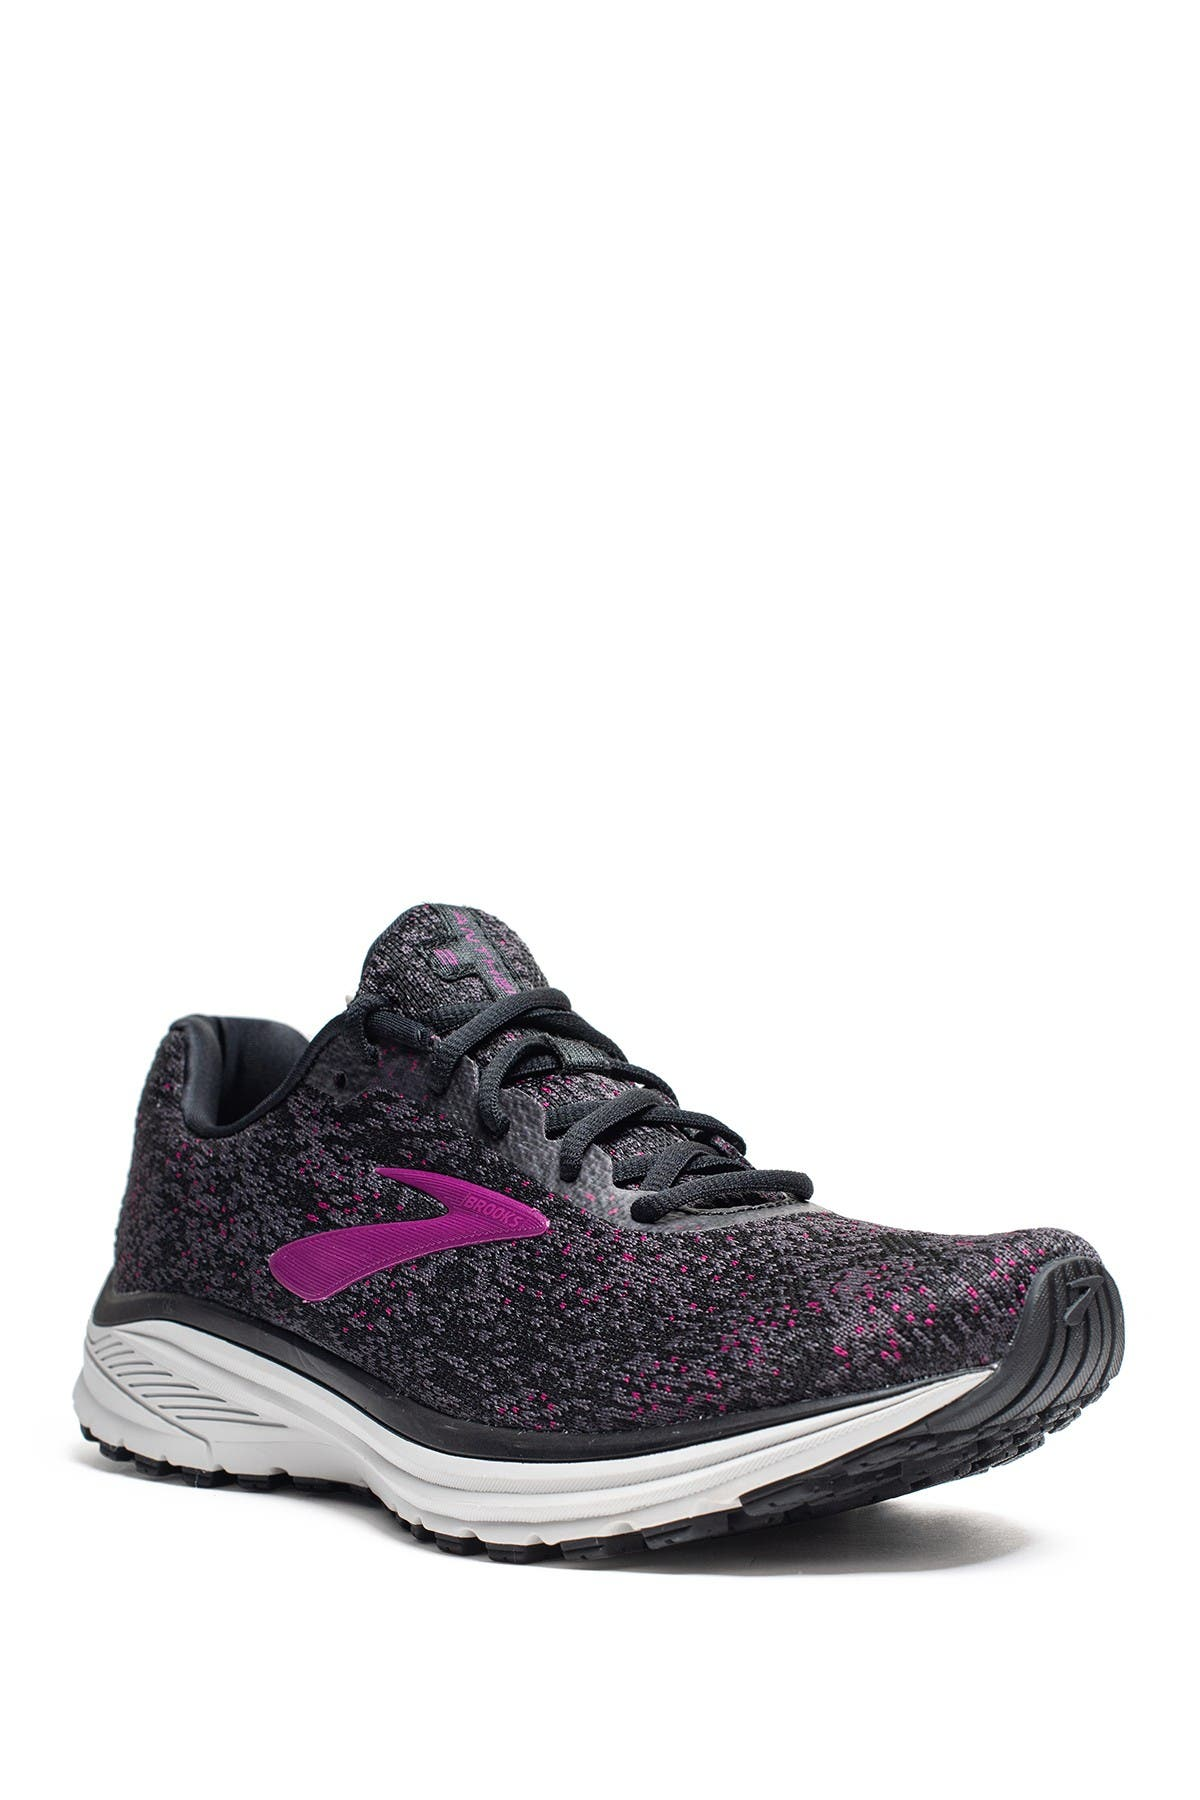 Brooks Women/'s Anthem 2 Road Running Sneakers Shoes BX92K3D063 Size 5-10